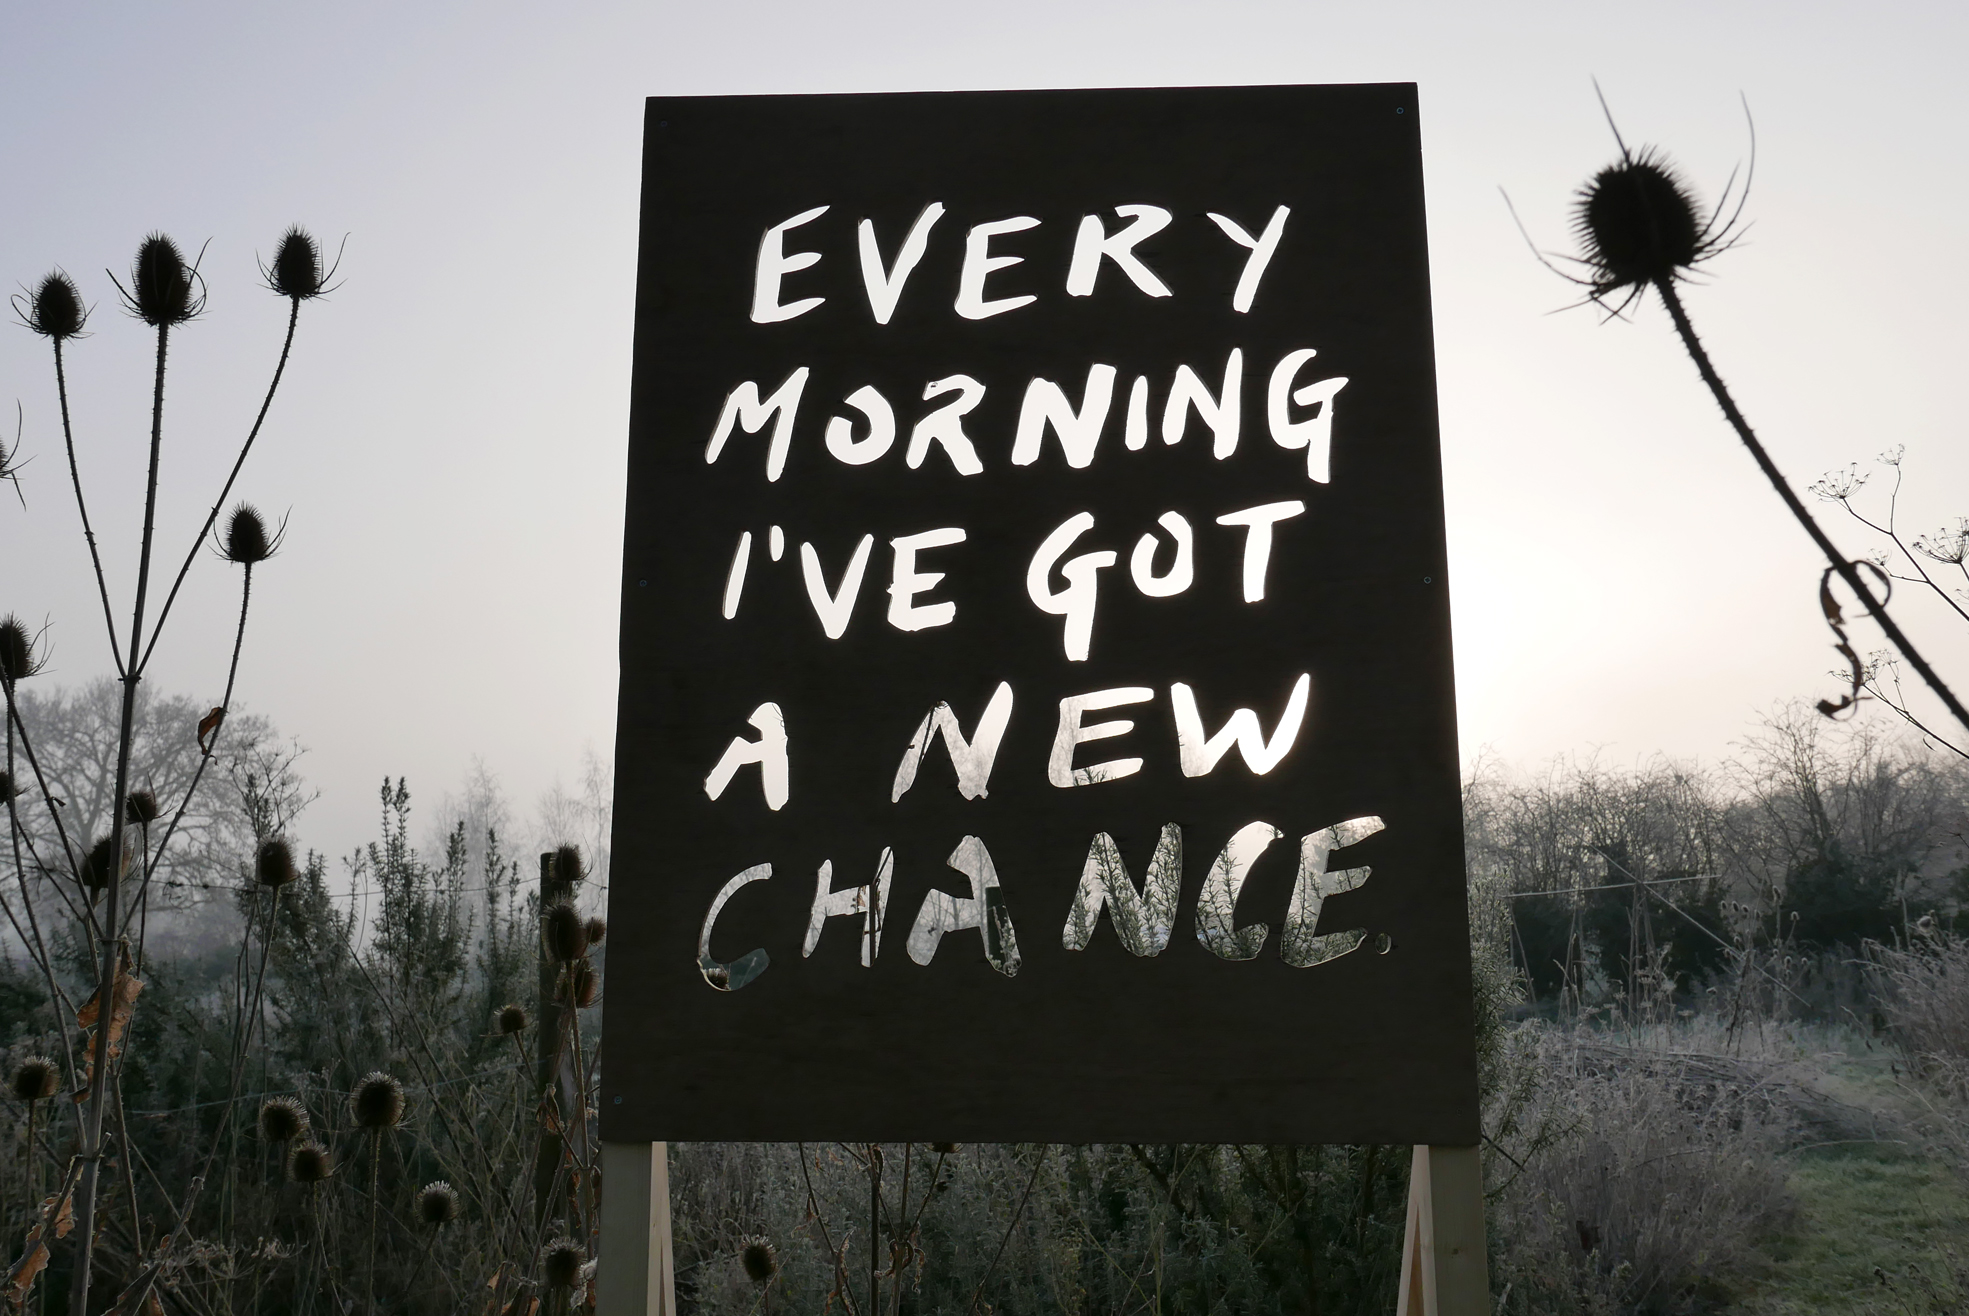 Every Morning I've Got A New Chance